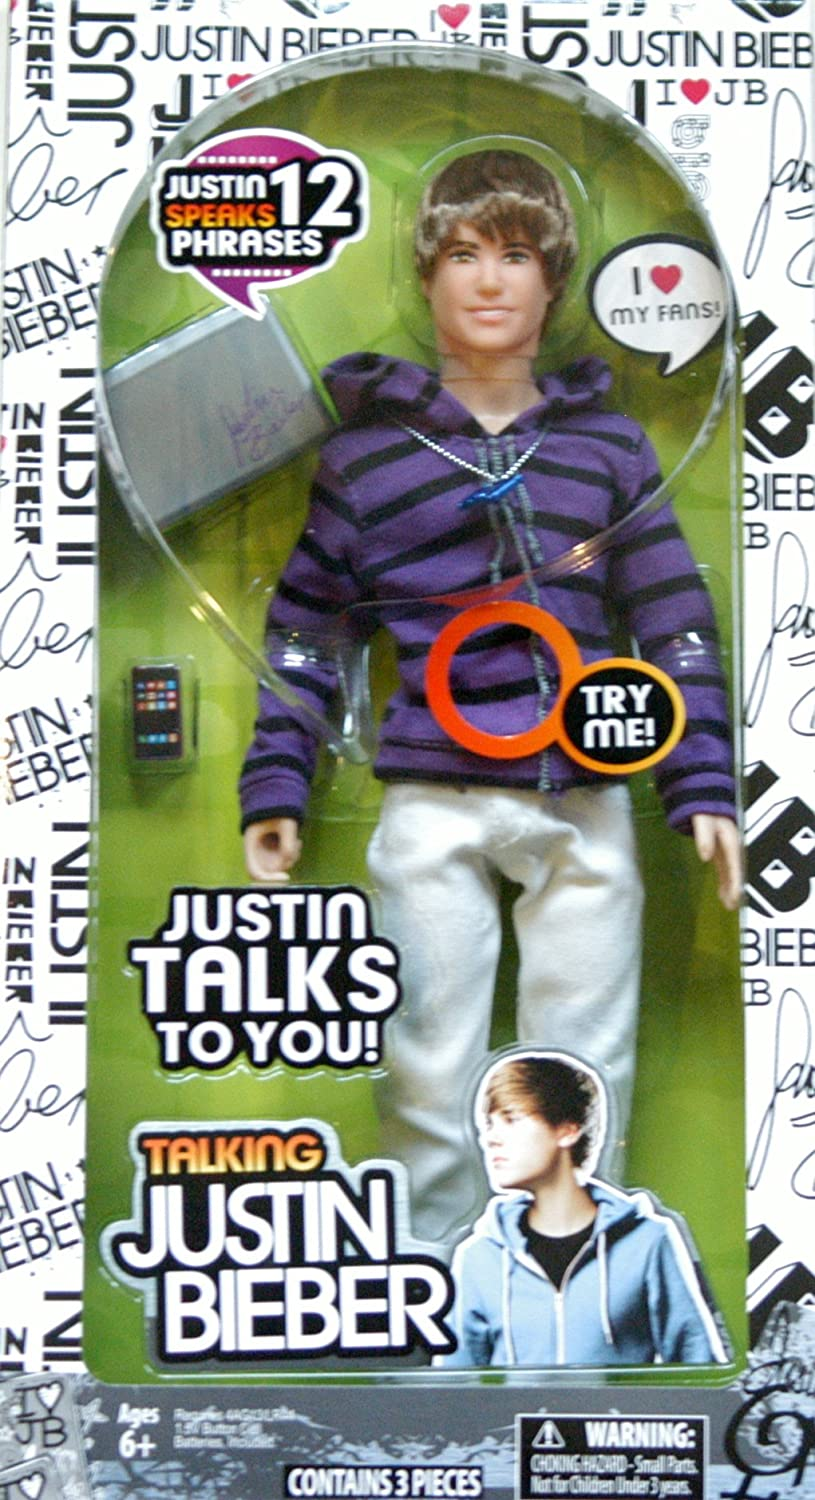 Justin Bieber doll speaks 12 phrases (Englisch sprechende Puppe)